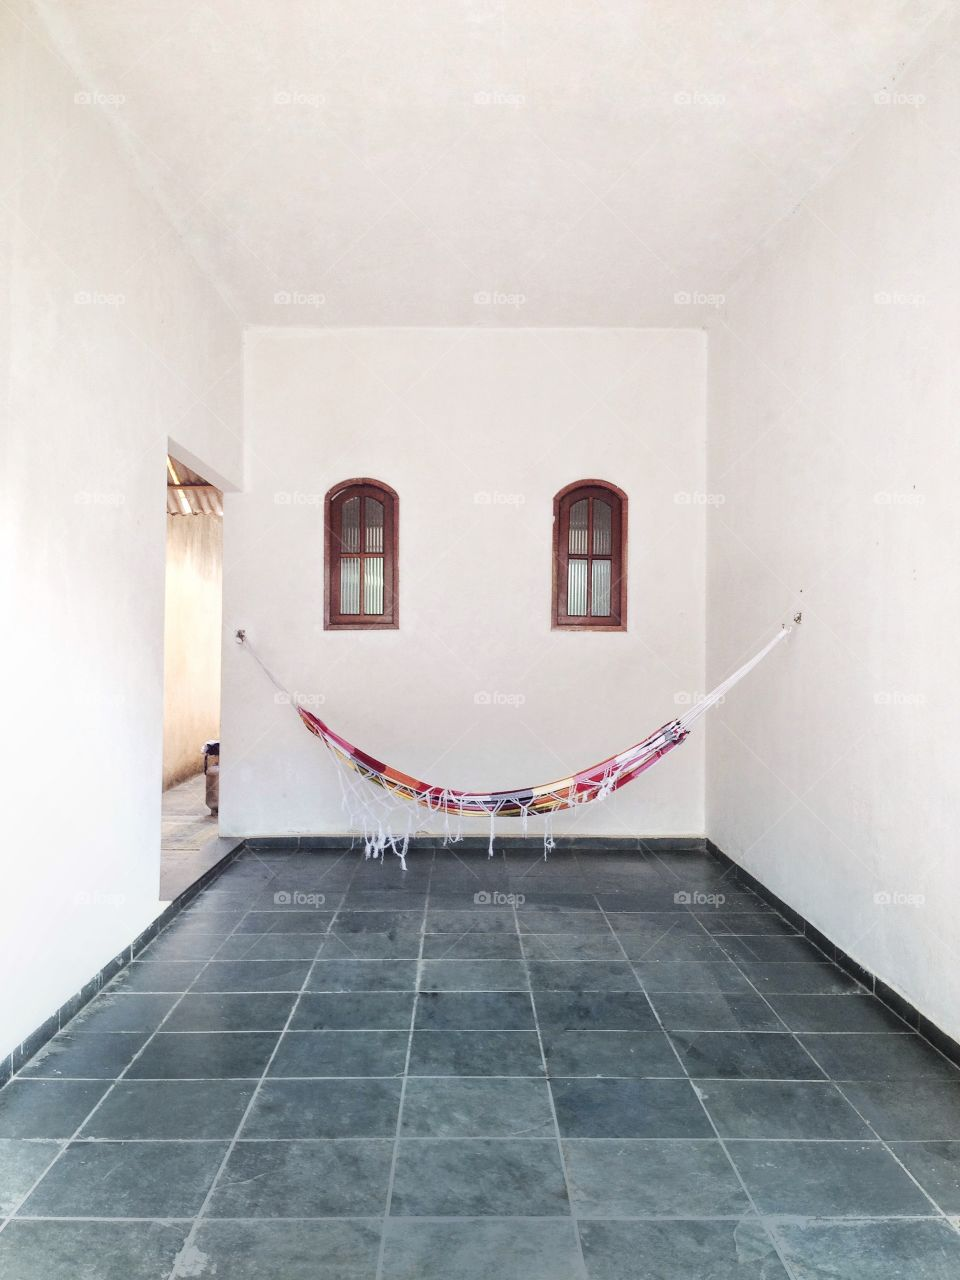 Hammock hanging in front view wall